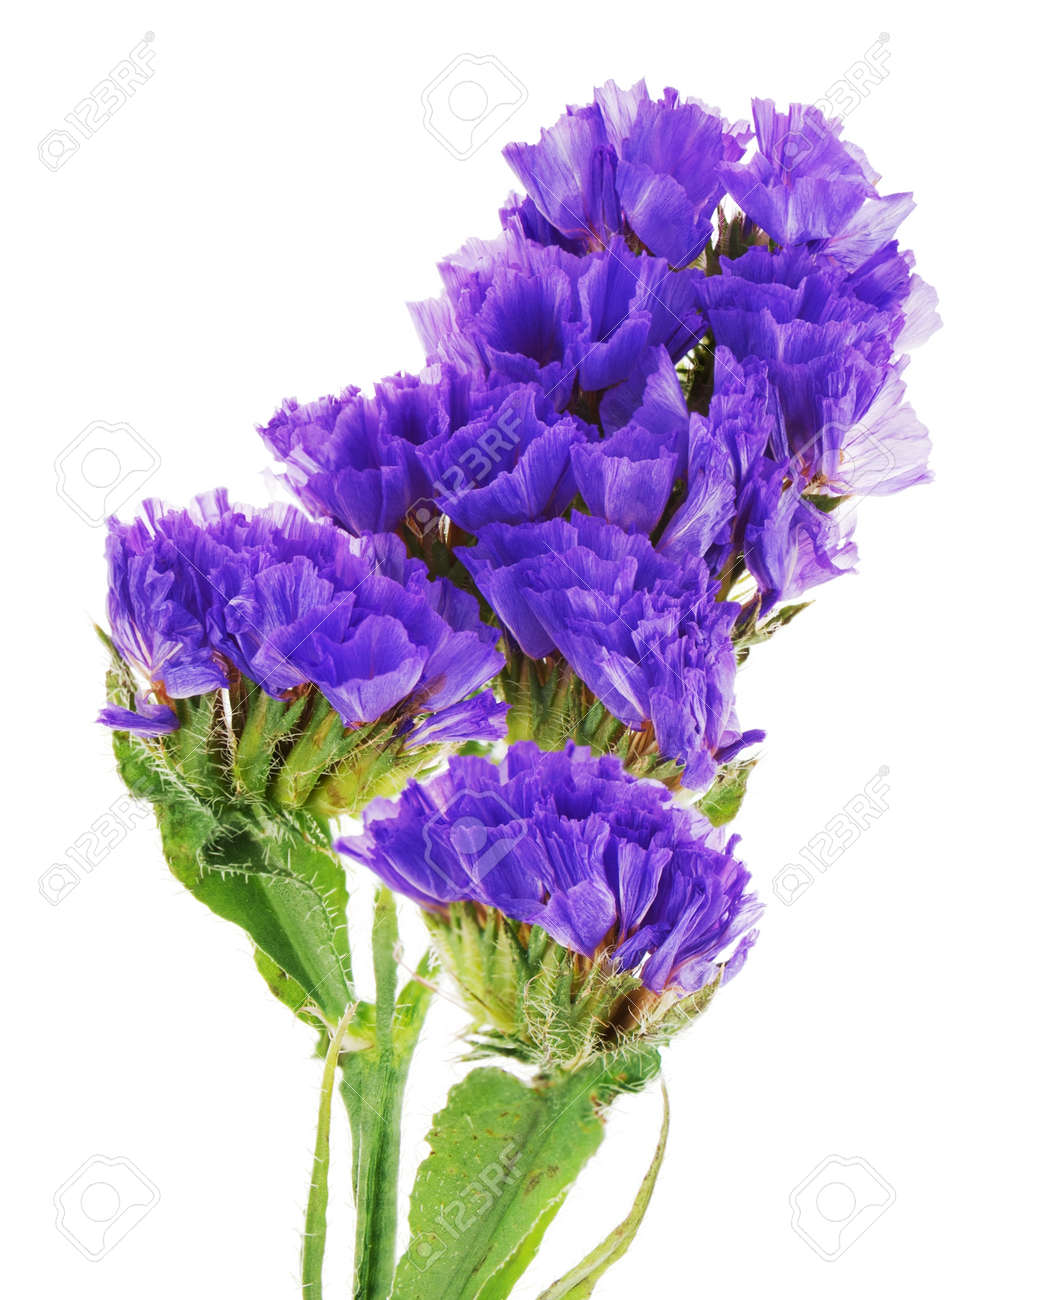 Macro Shot Of Purple Statice Flowers Isolated On White Background